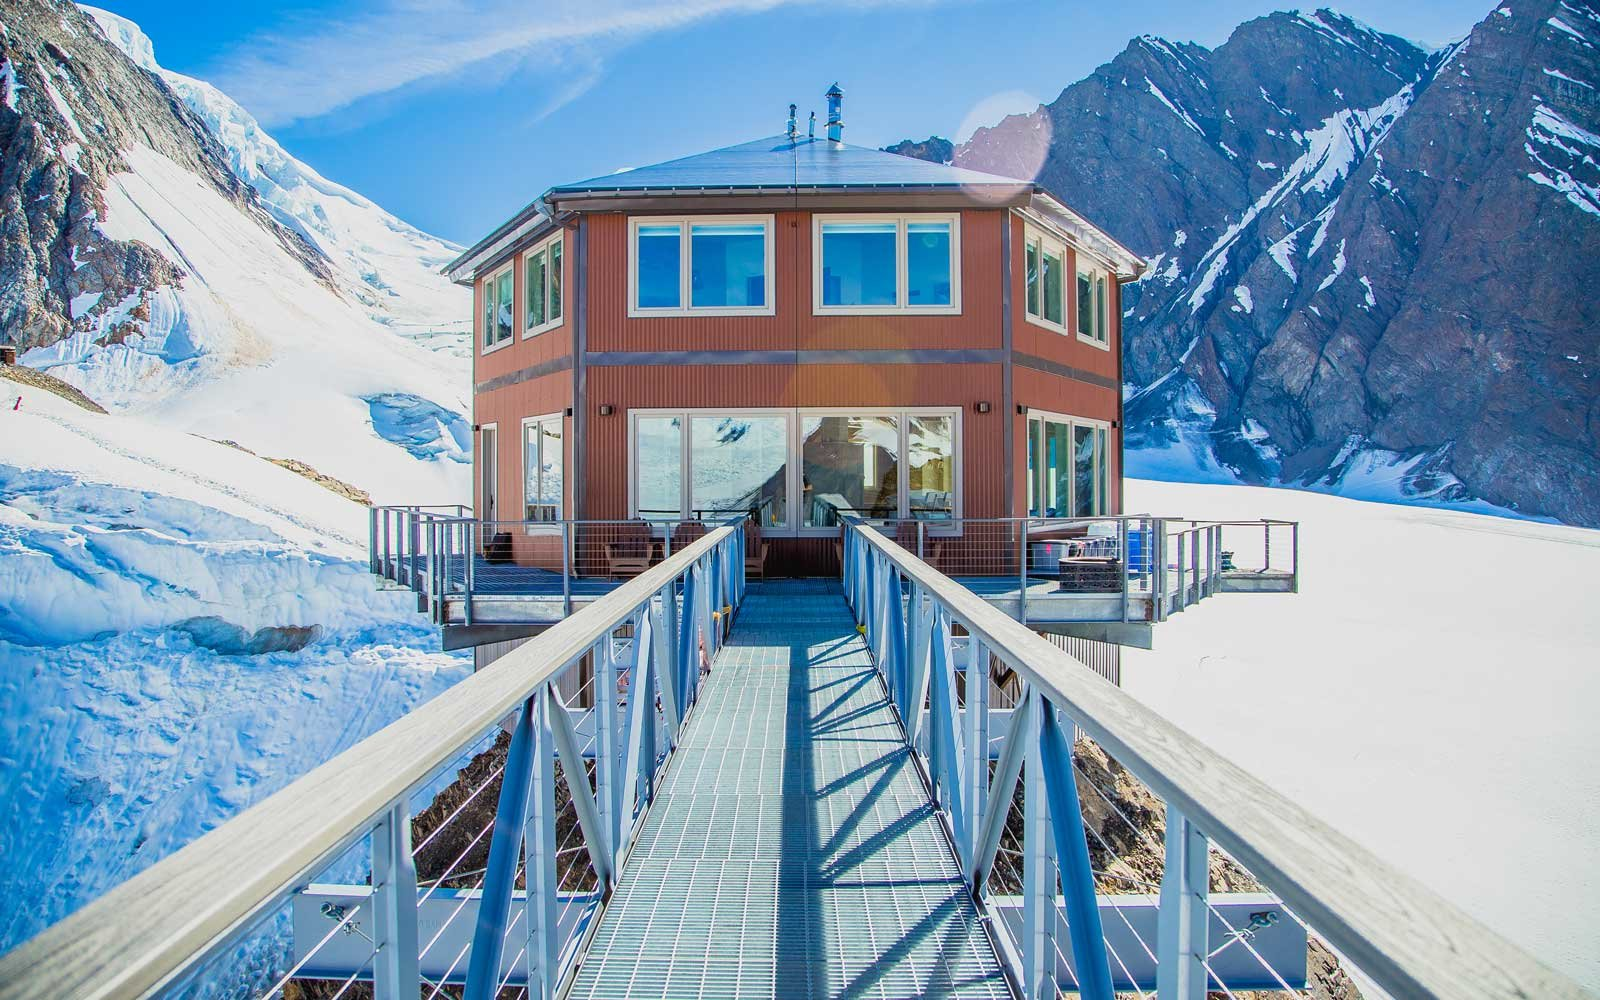 Exterior view of the remote Sheldon Chalet, in Alaska